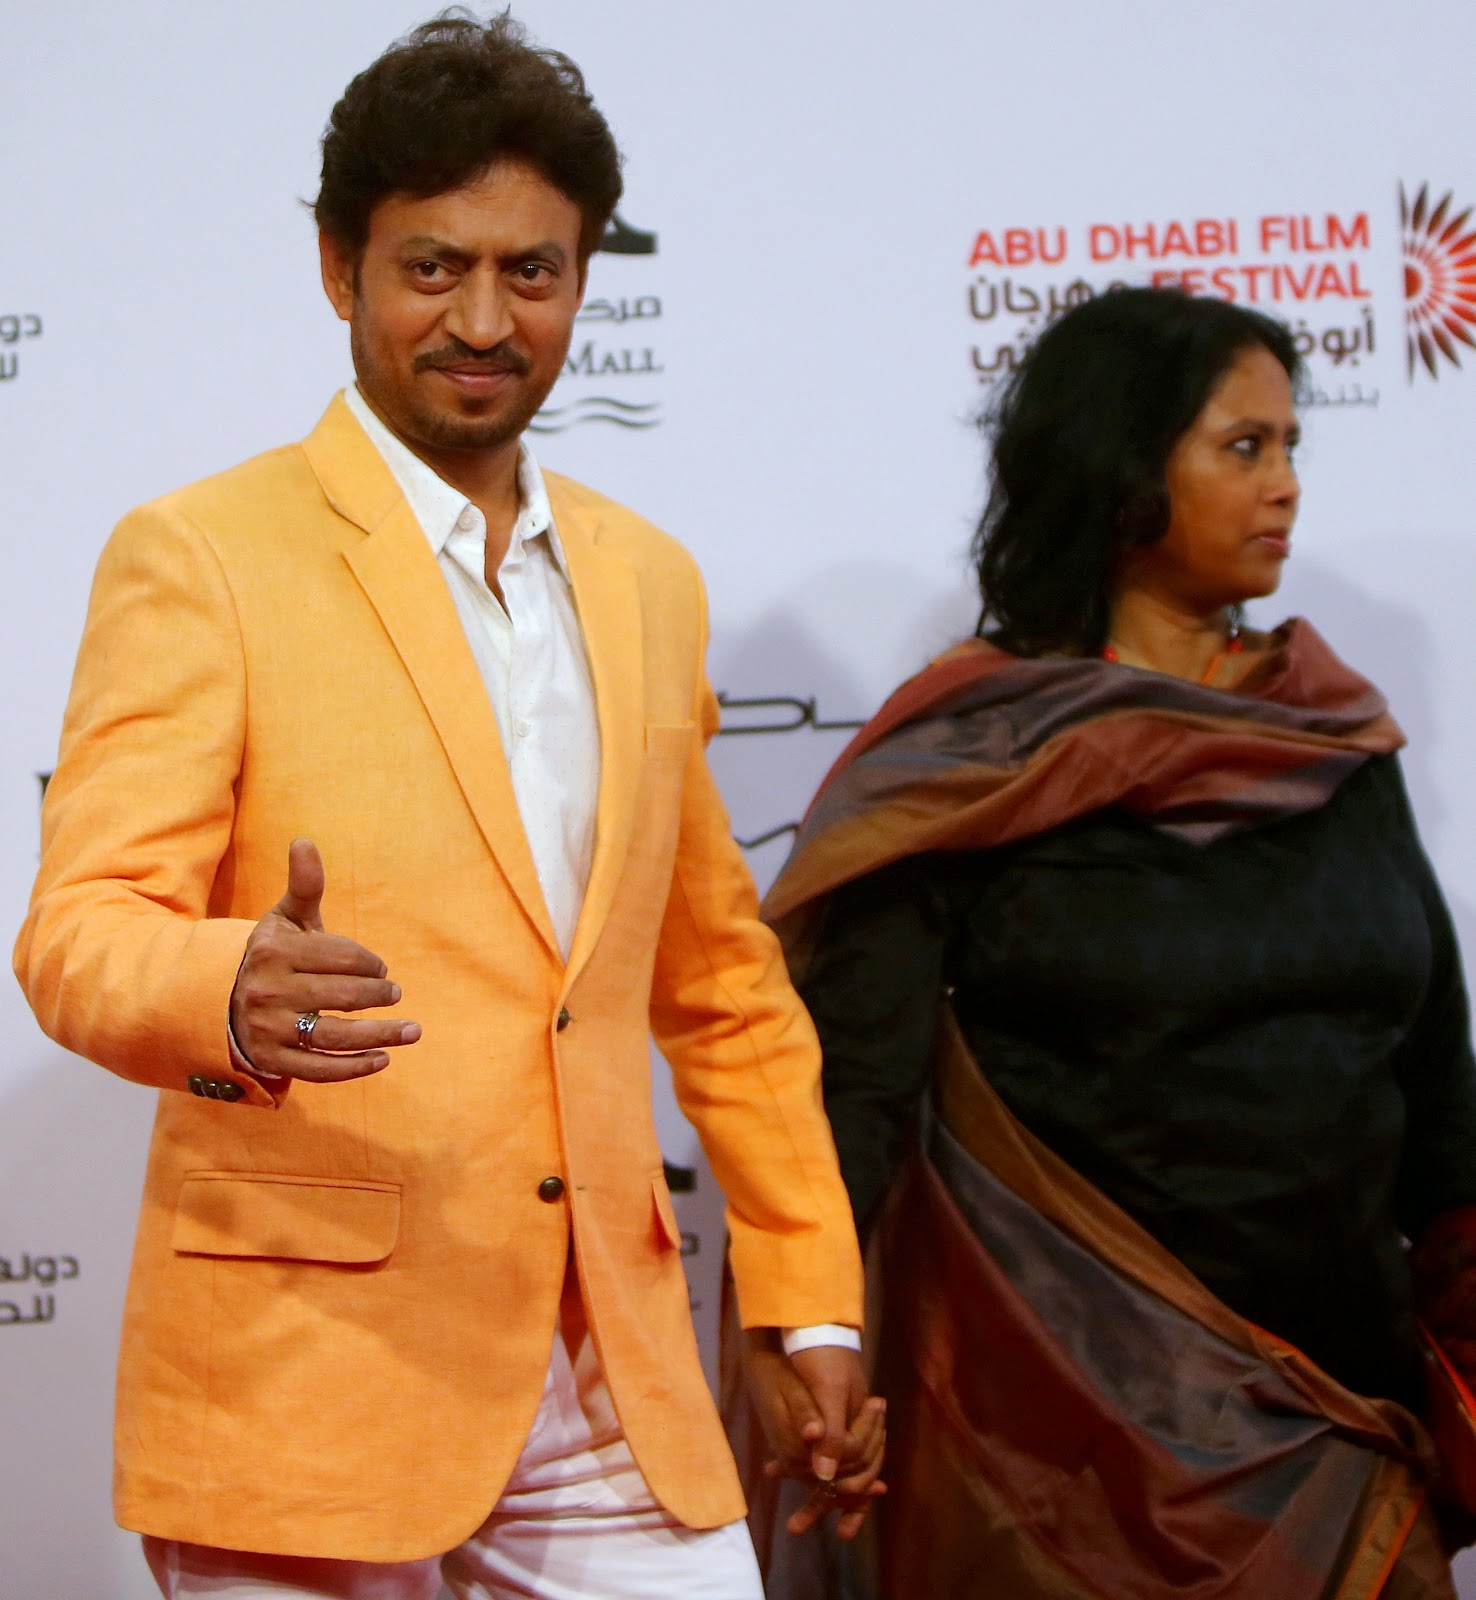 ADFF - Abu Dhabi Film Festival 2014 in HD Pictures